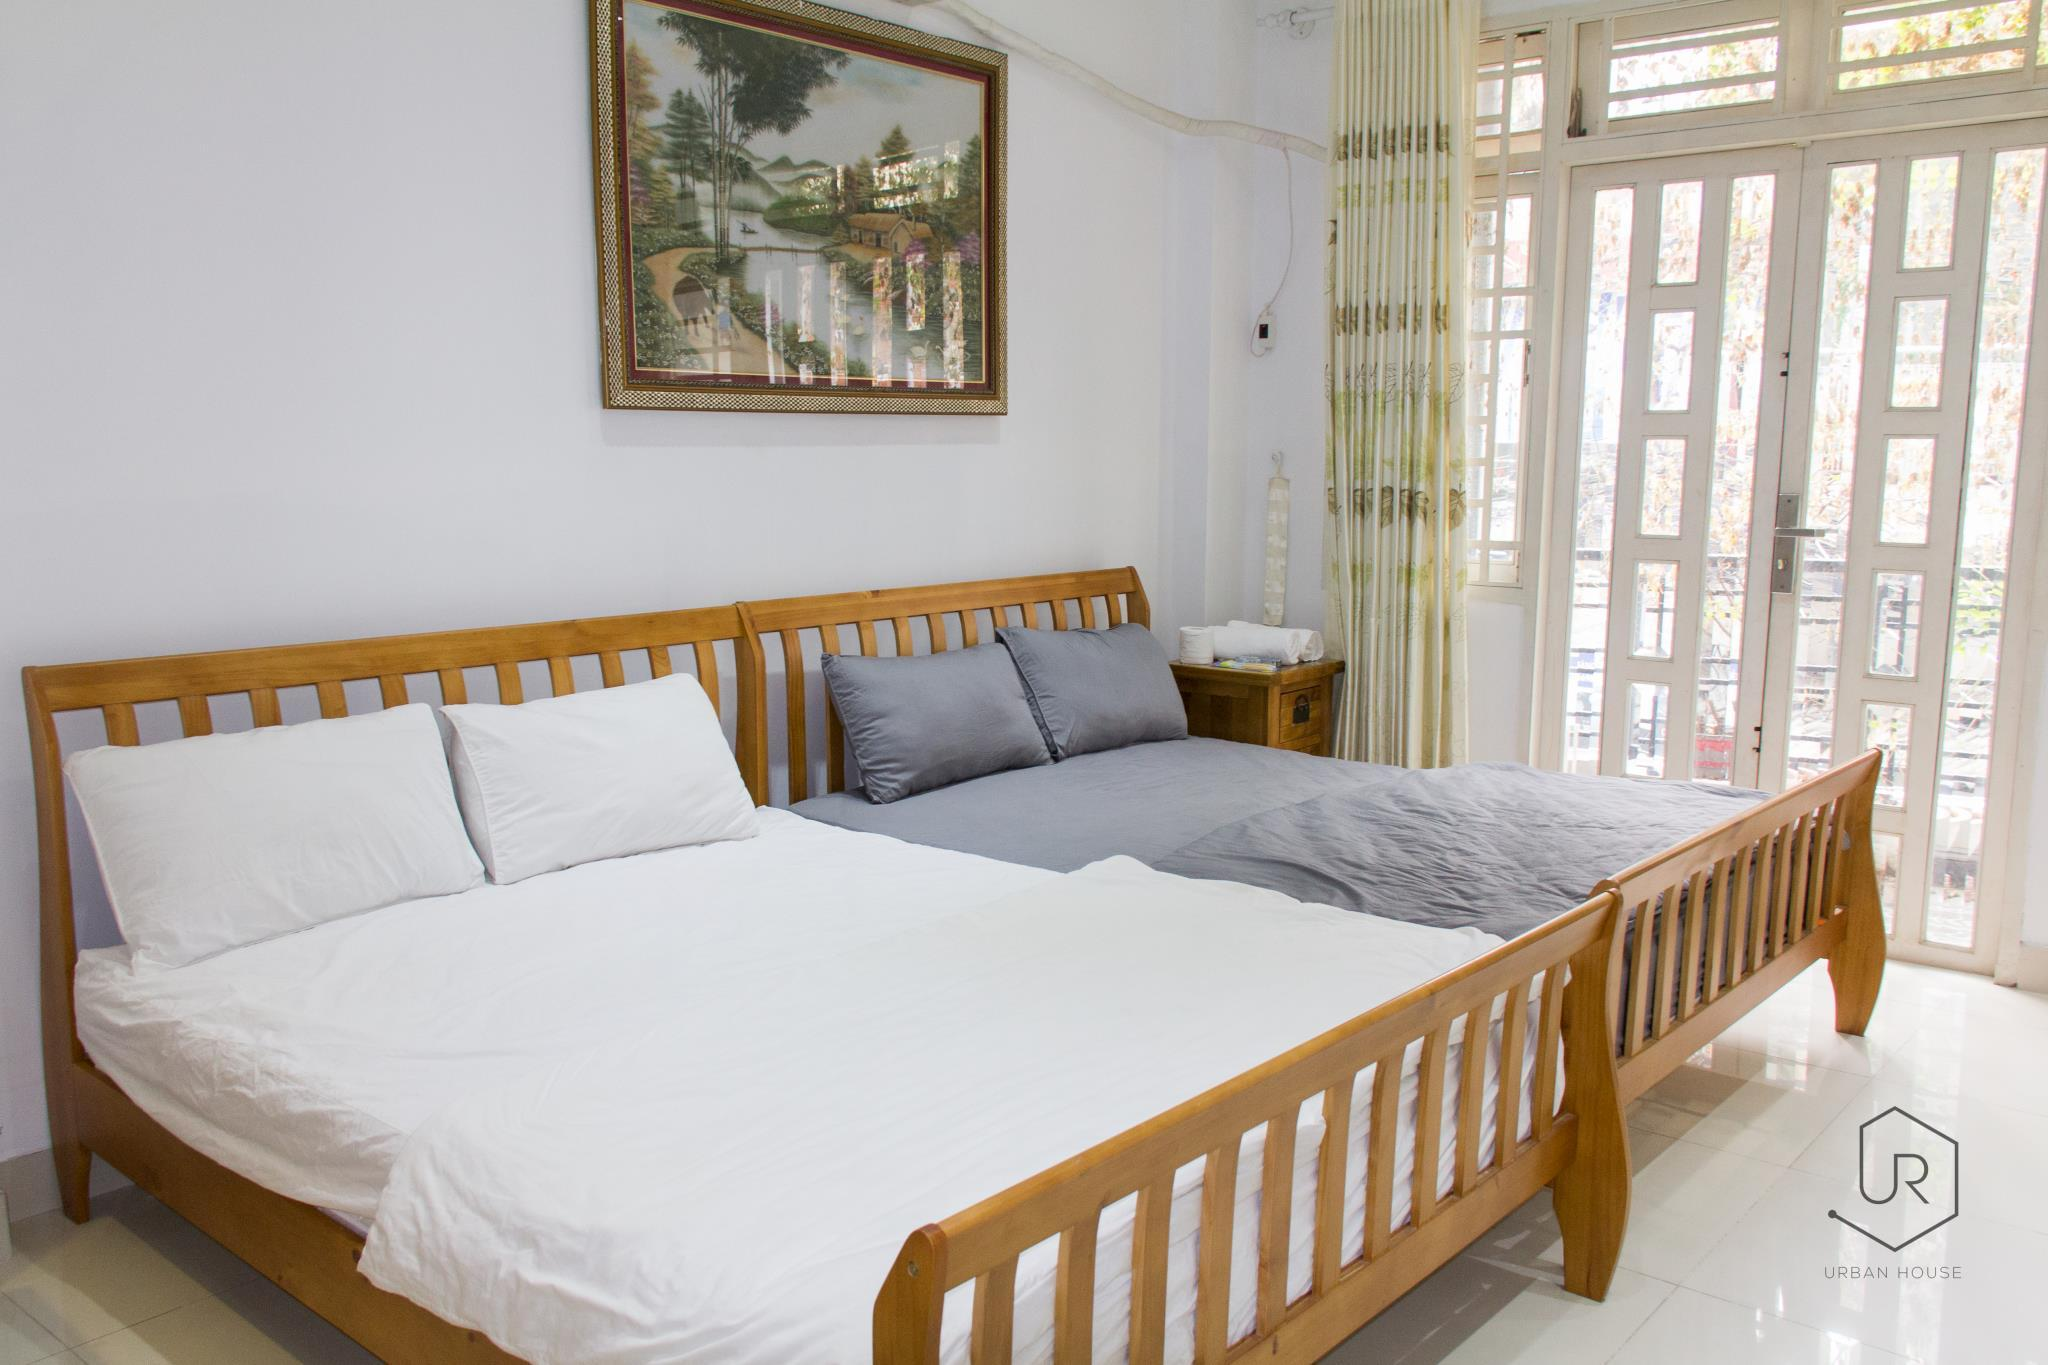 Best Price on Urban House Saigon 2 Family room in Ho Chi Minh City + ...